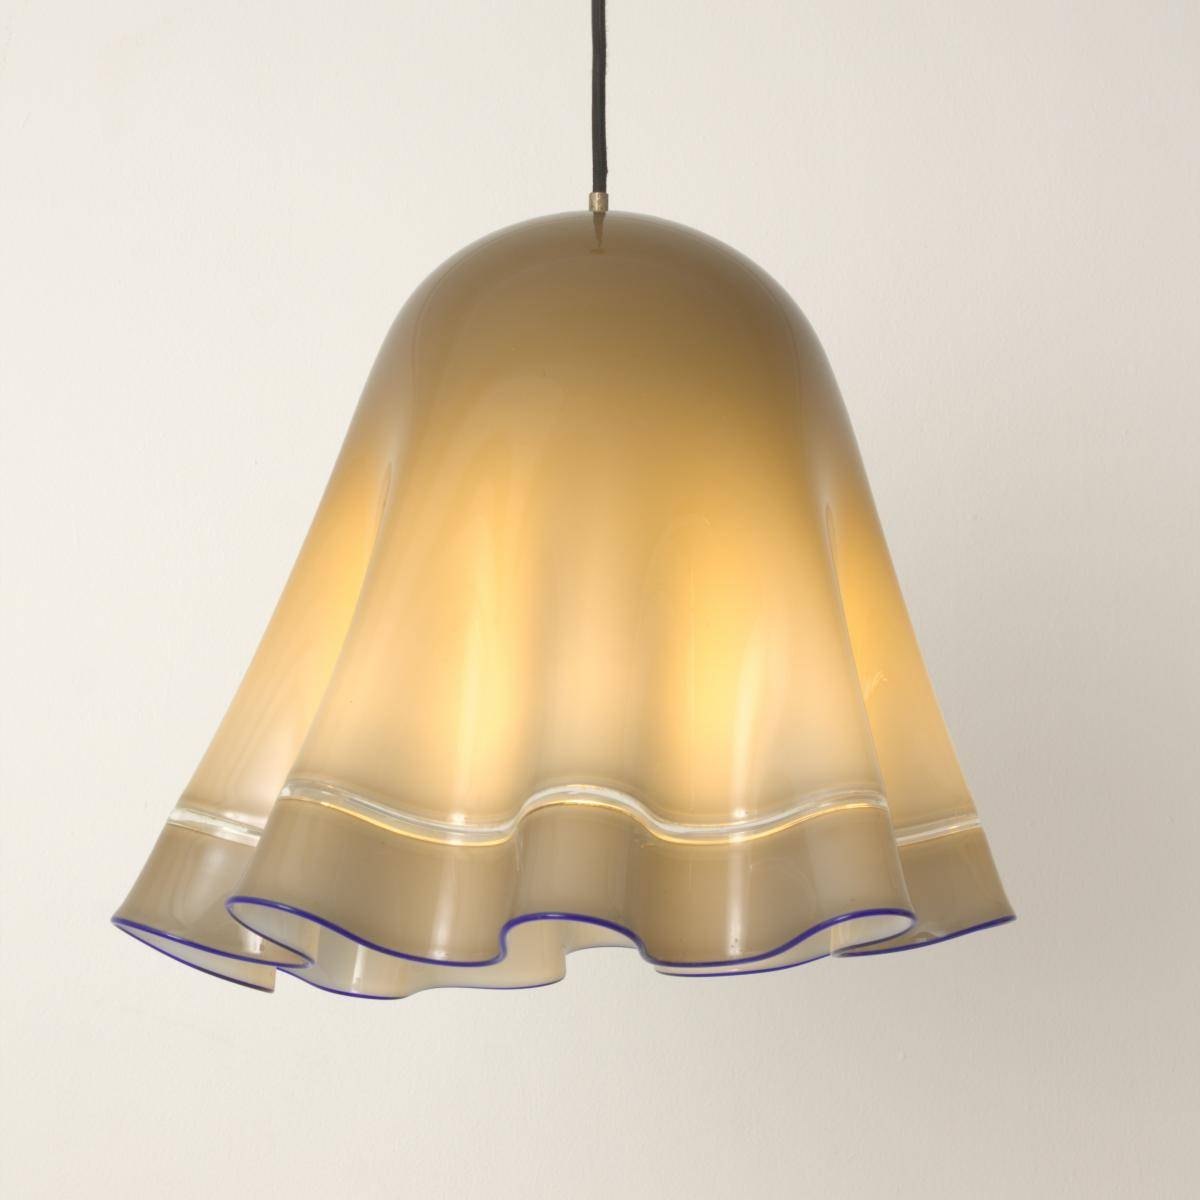 Murano Glass Pendant Light - Baby-Exit intended for Murano Glass Ceiling Lights (Image 7 of 15)